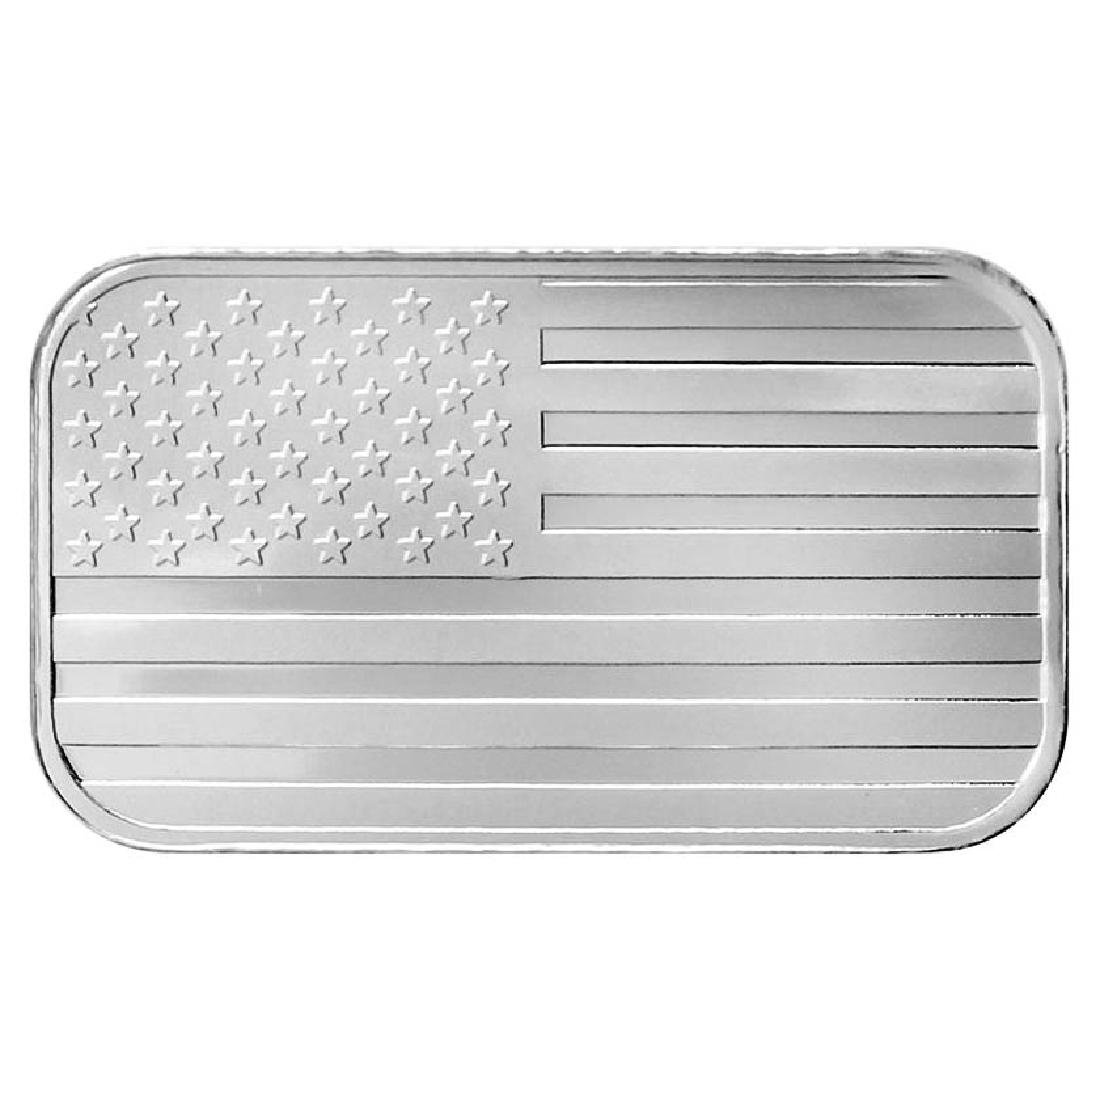 SilverTowne 1 oz Silver Bar - Flag Design